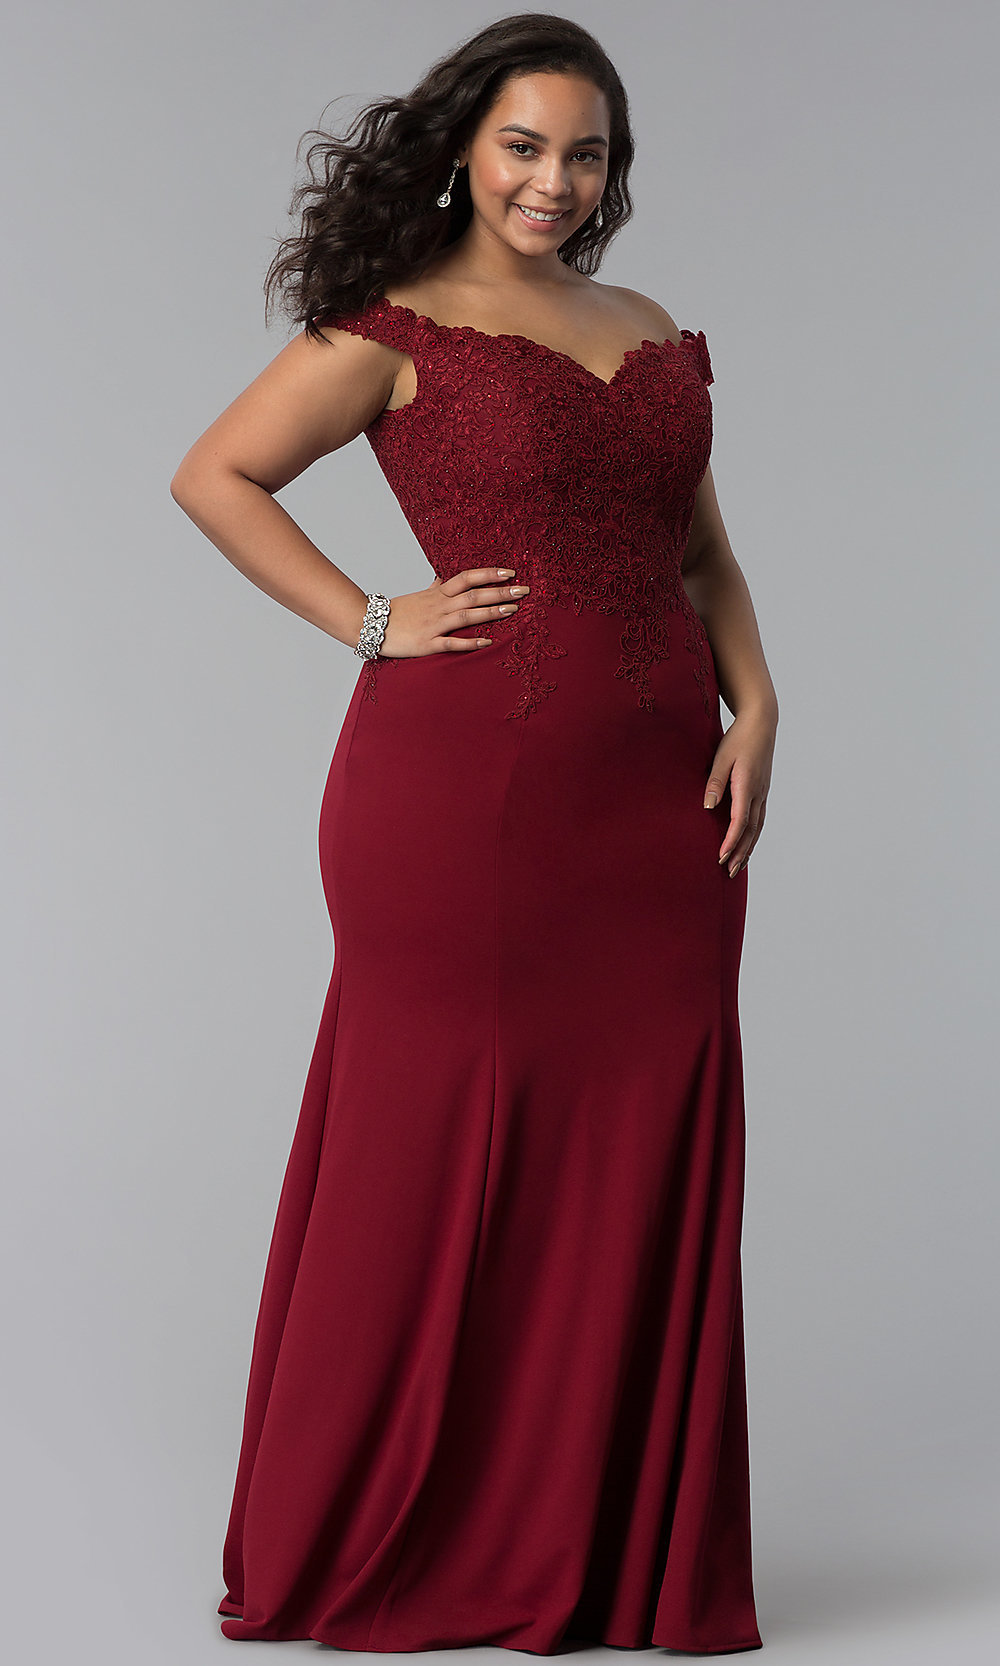 Off Shoulder Long Plus Size Prom Dress With Lace